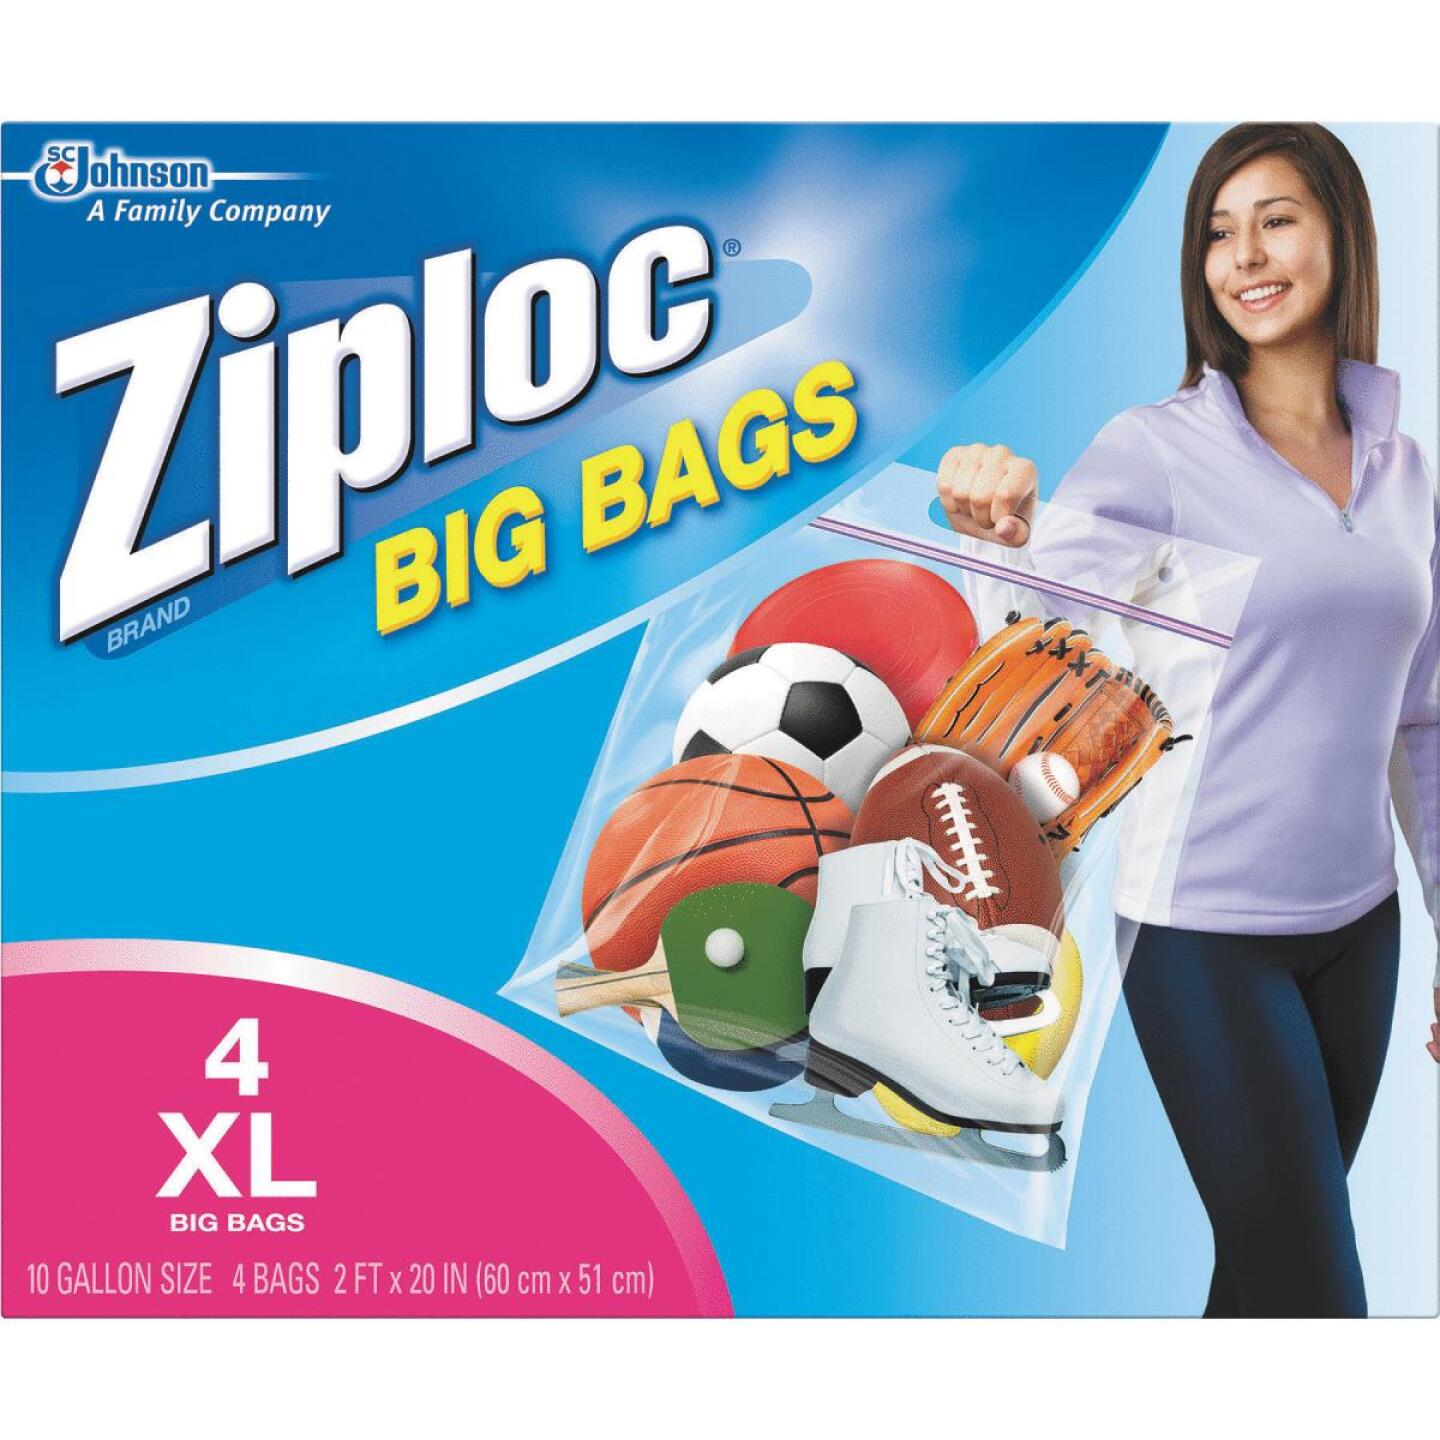 Ziploc Big Bag 10 Gallon XL Storage Bags, (4-Count) Image 1